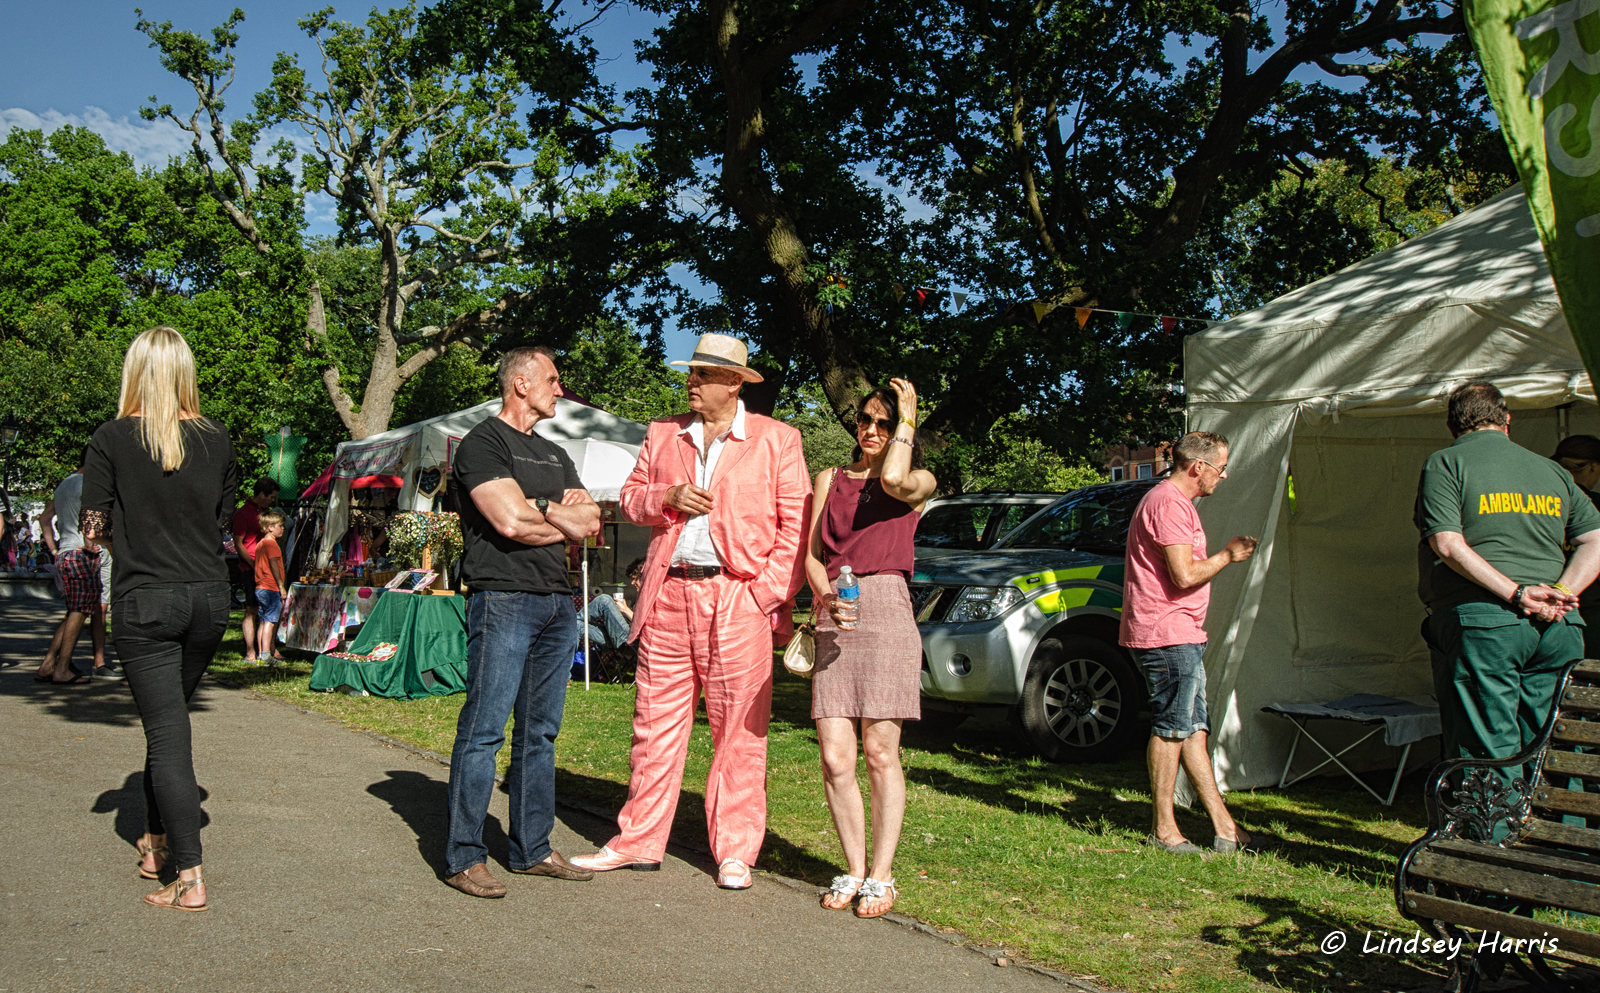 Man in a pink suit